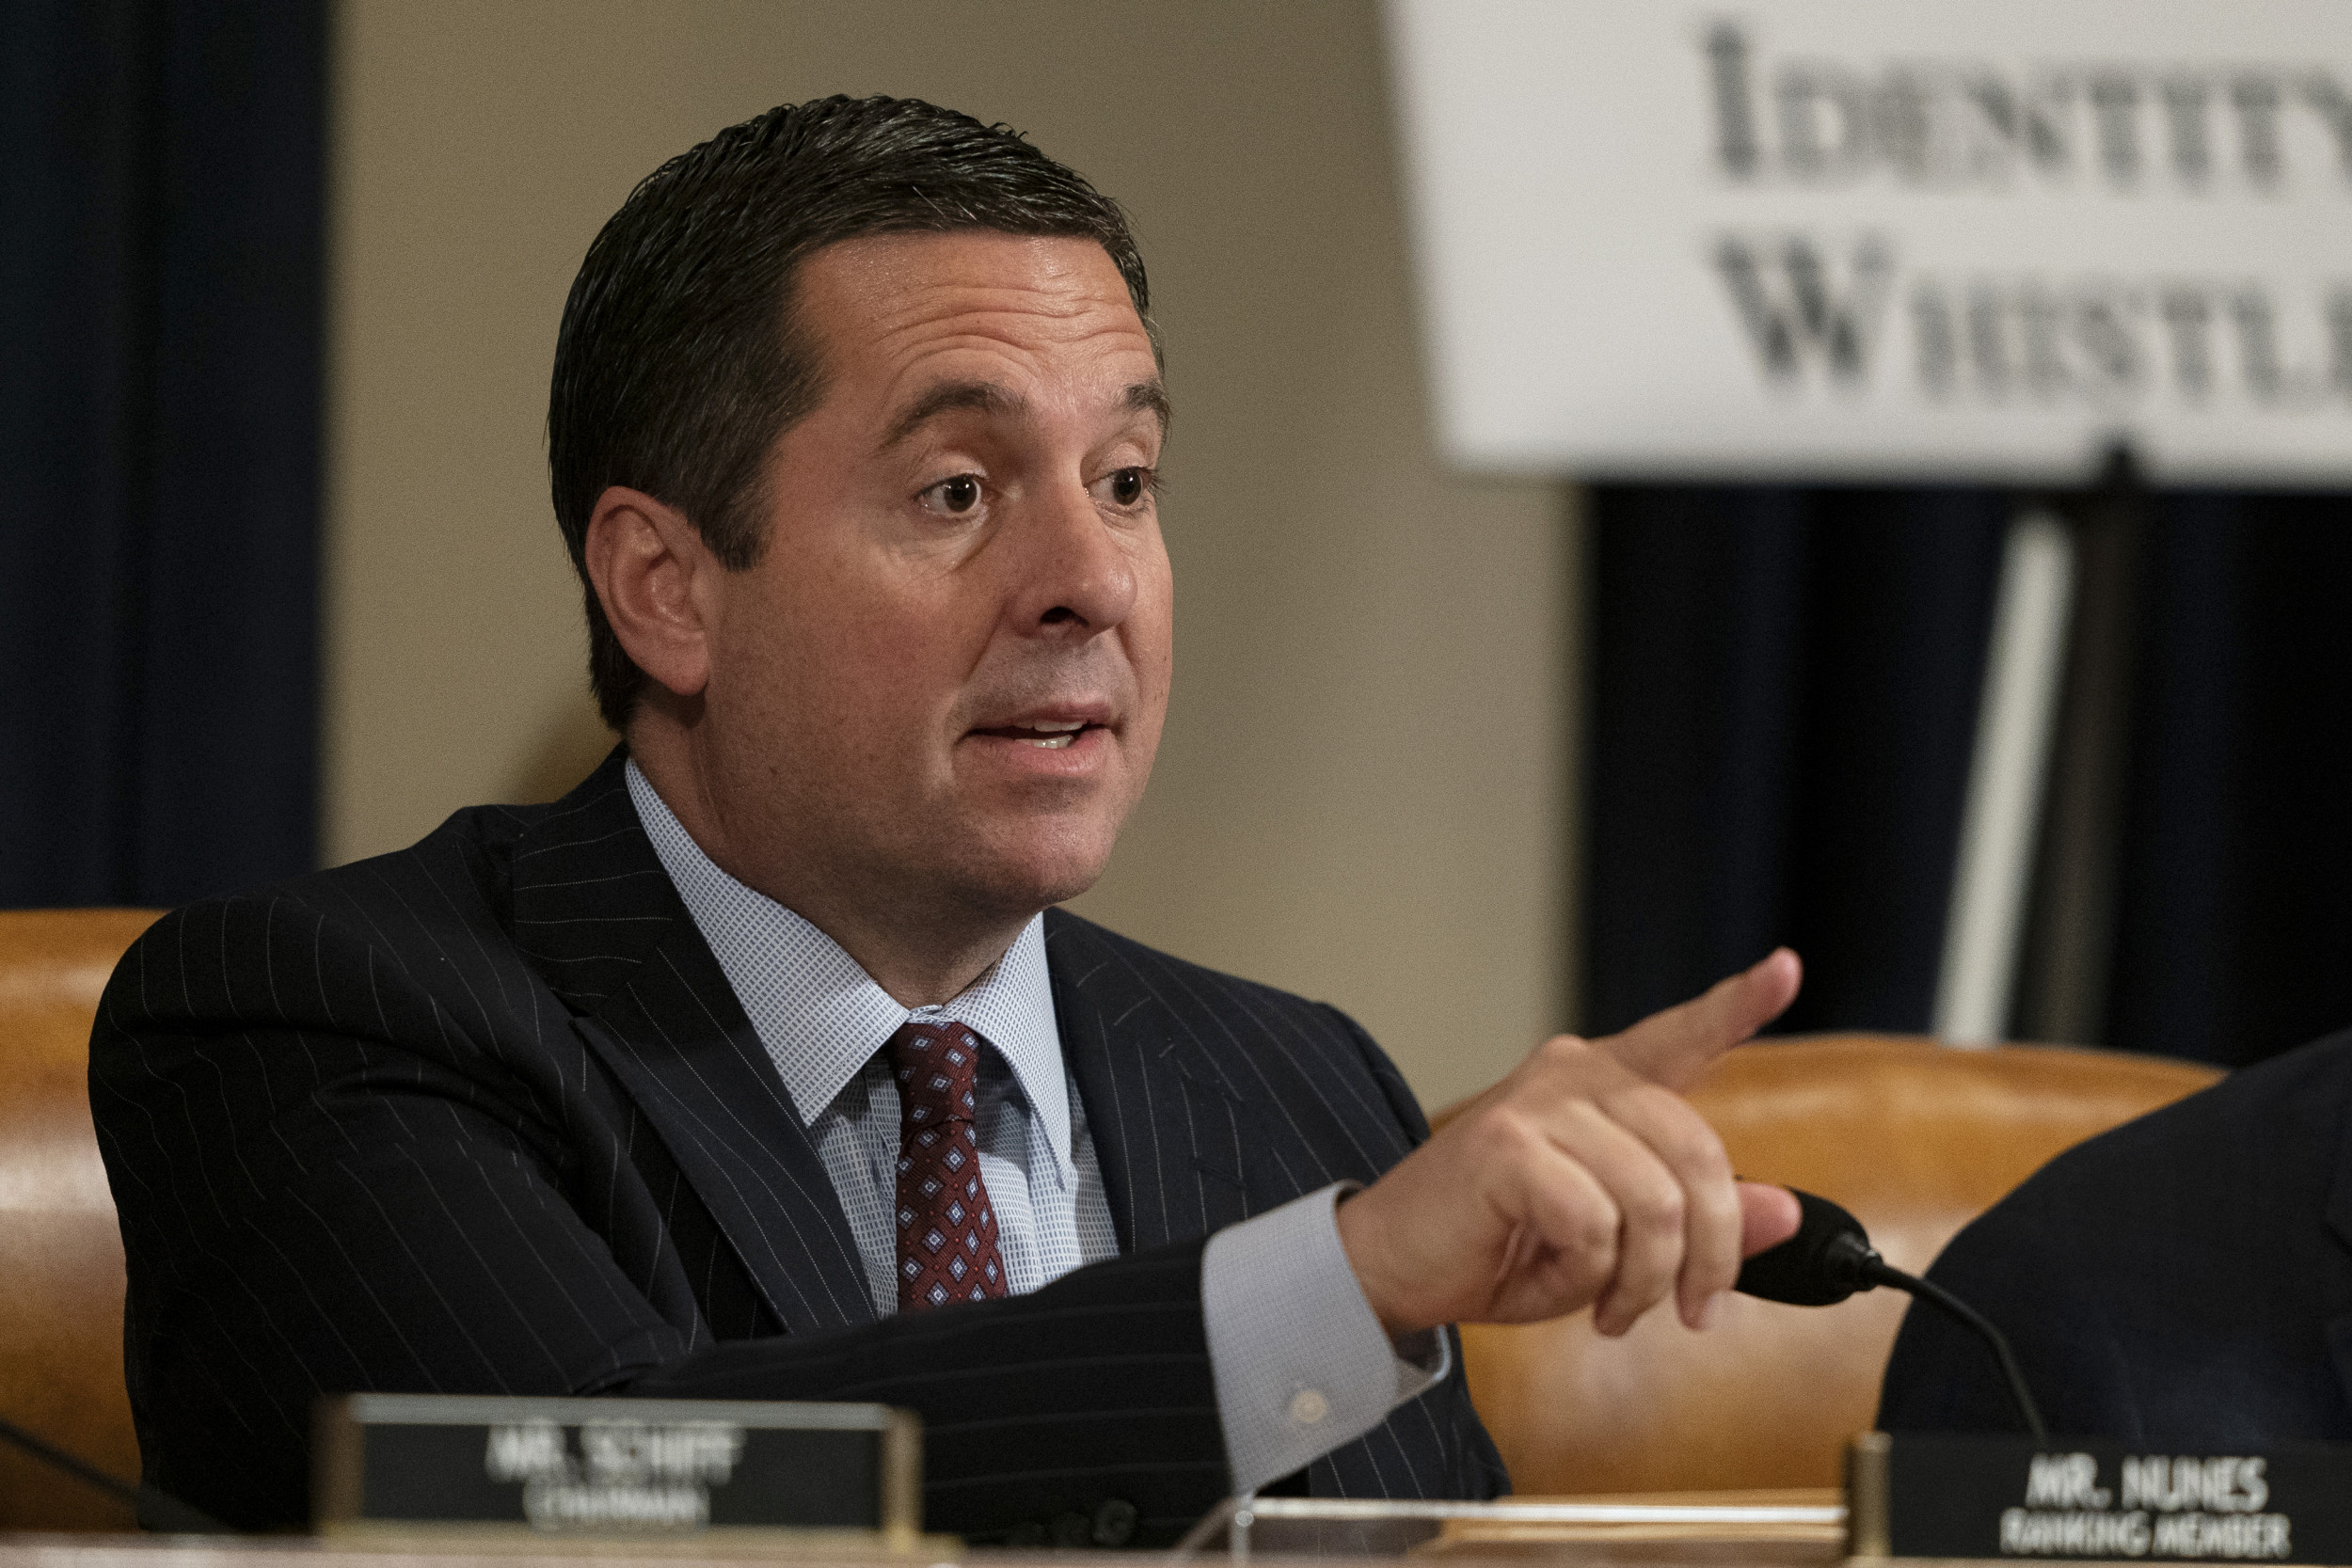 GOP Rep. Nunes asks if Riussians only like Republicans, why did they let them lose the House